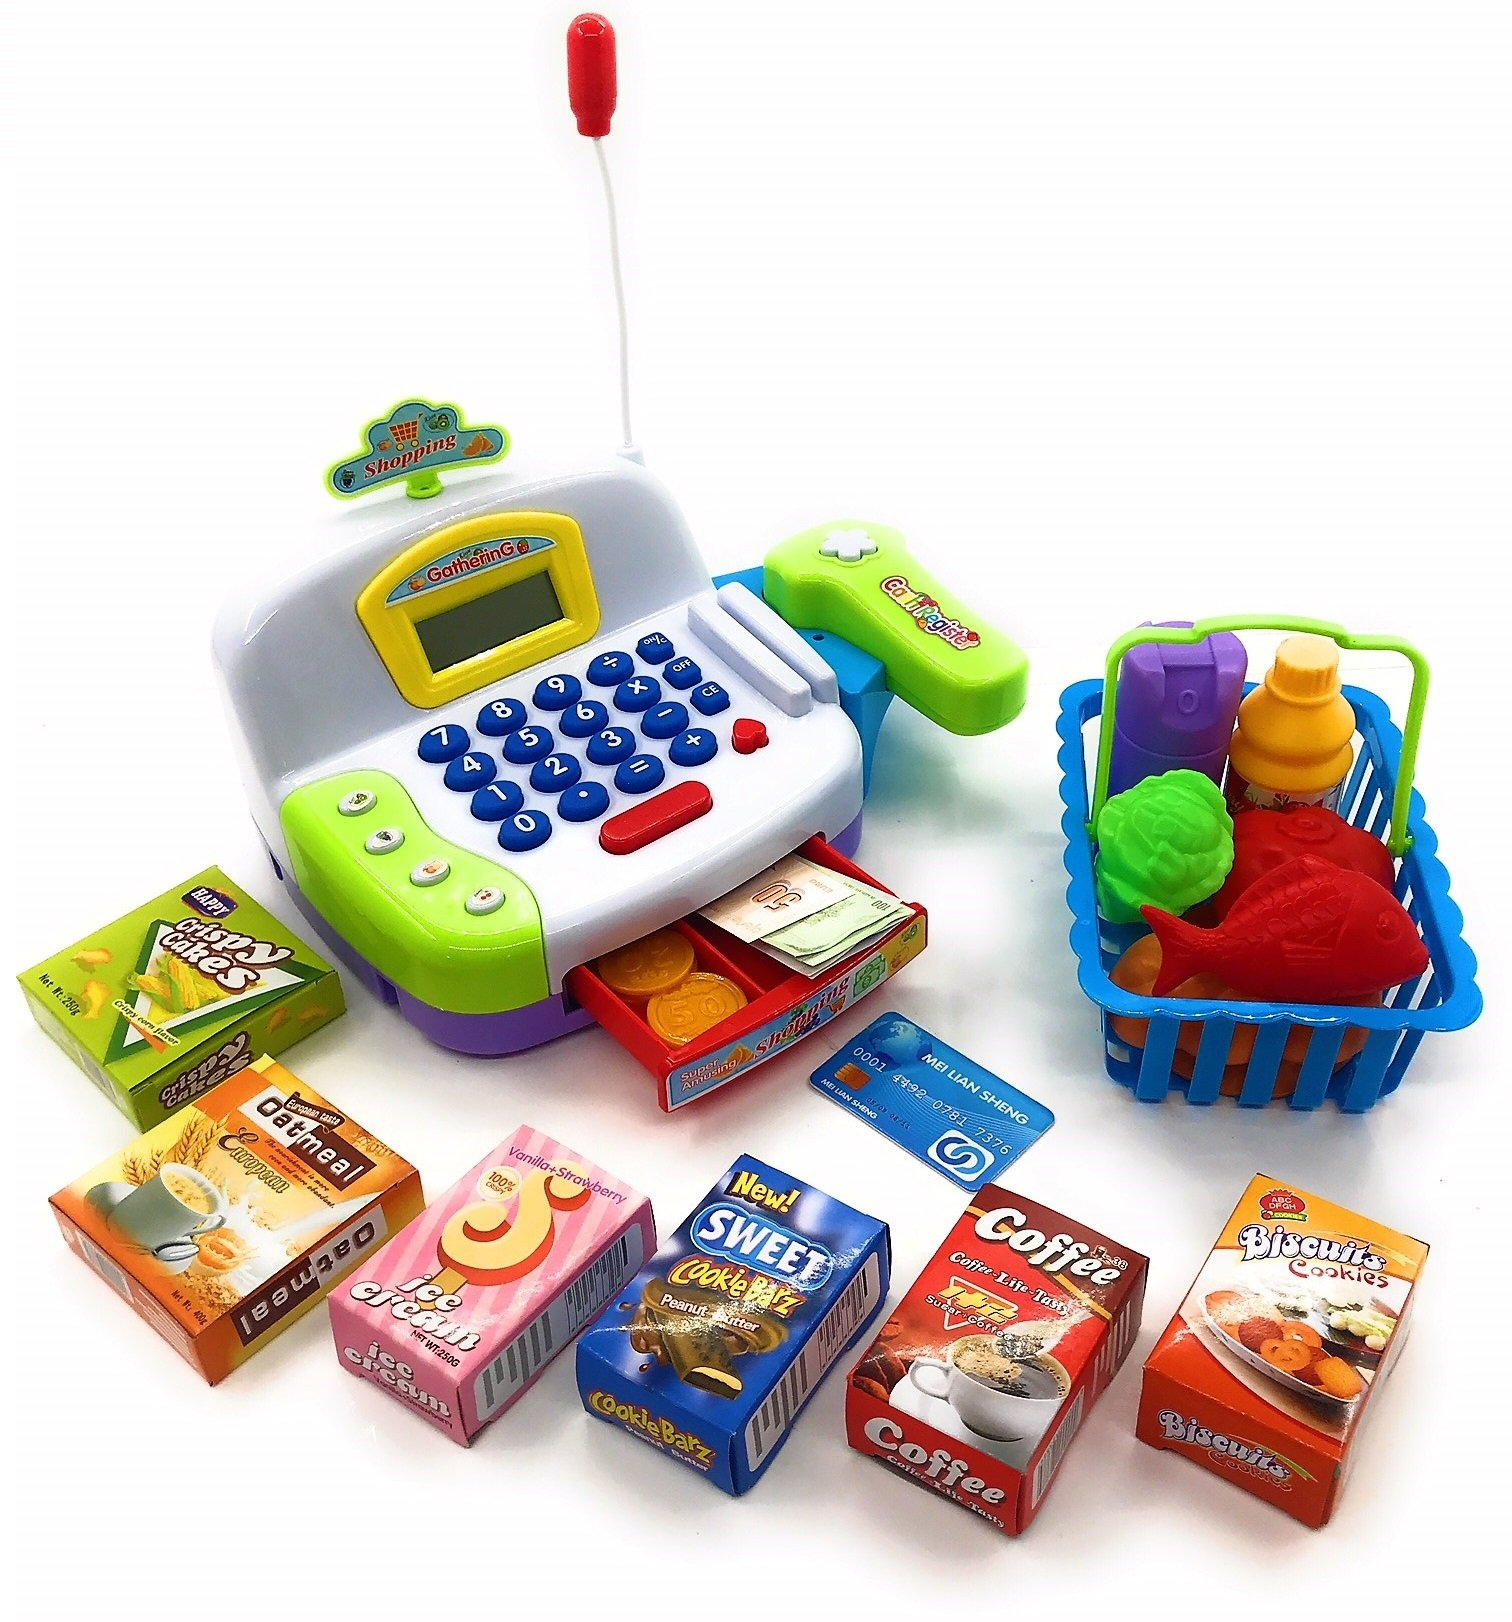 Toy Cash Register Cashier Playset Battery Operated, Kids Pretend Play Set ,Colorful Childrens Cash Register w/ Microphone, Scanner, Calculator, Play Money & Groceries /Kids Supermarket Cashier (Green)